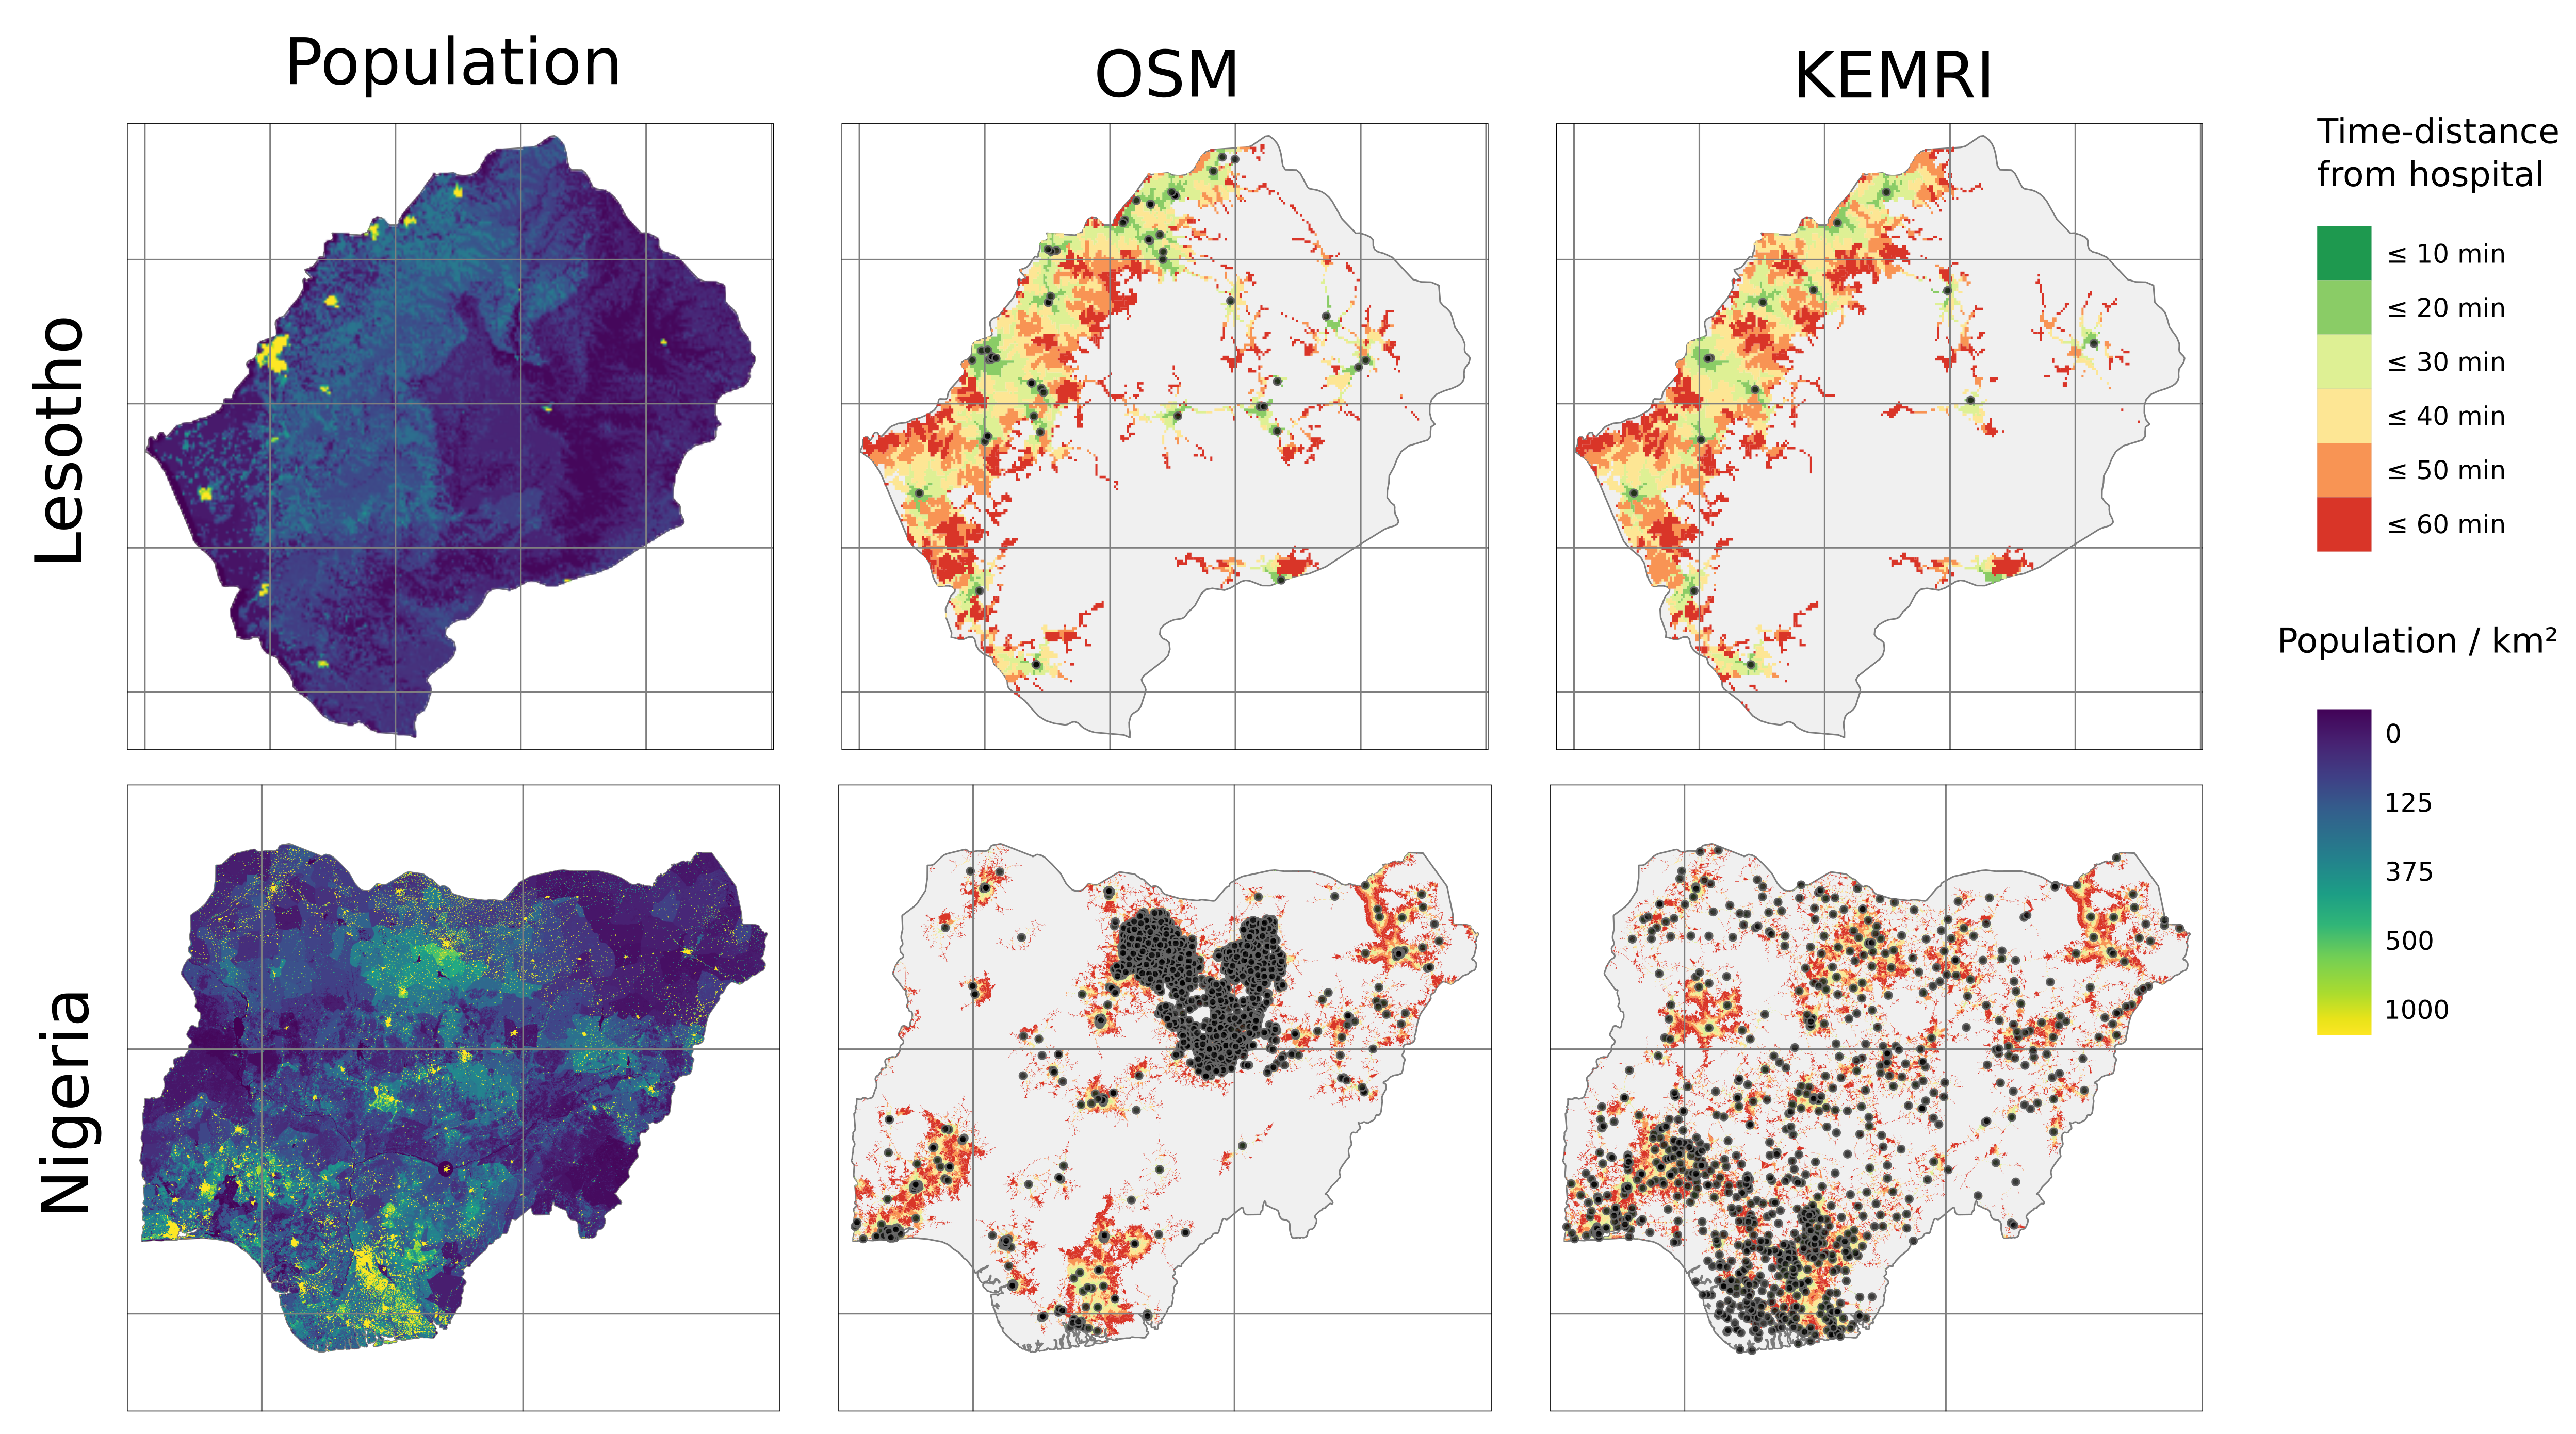 Figure 3 Maps on distribution of population, time-distance from hospitals and hospital locations for OSM and KEMRI.